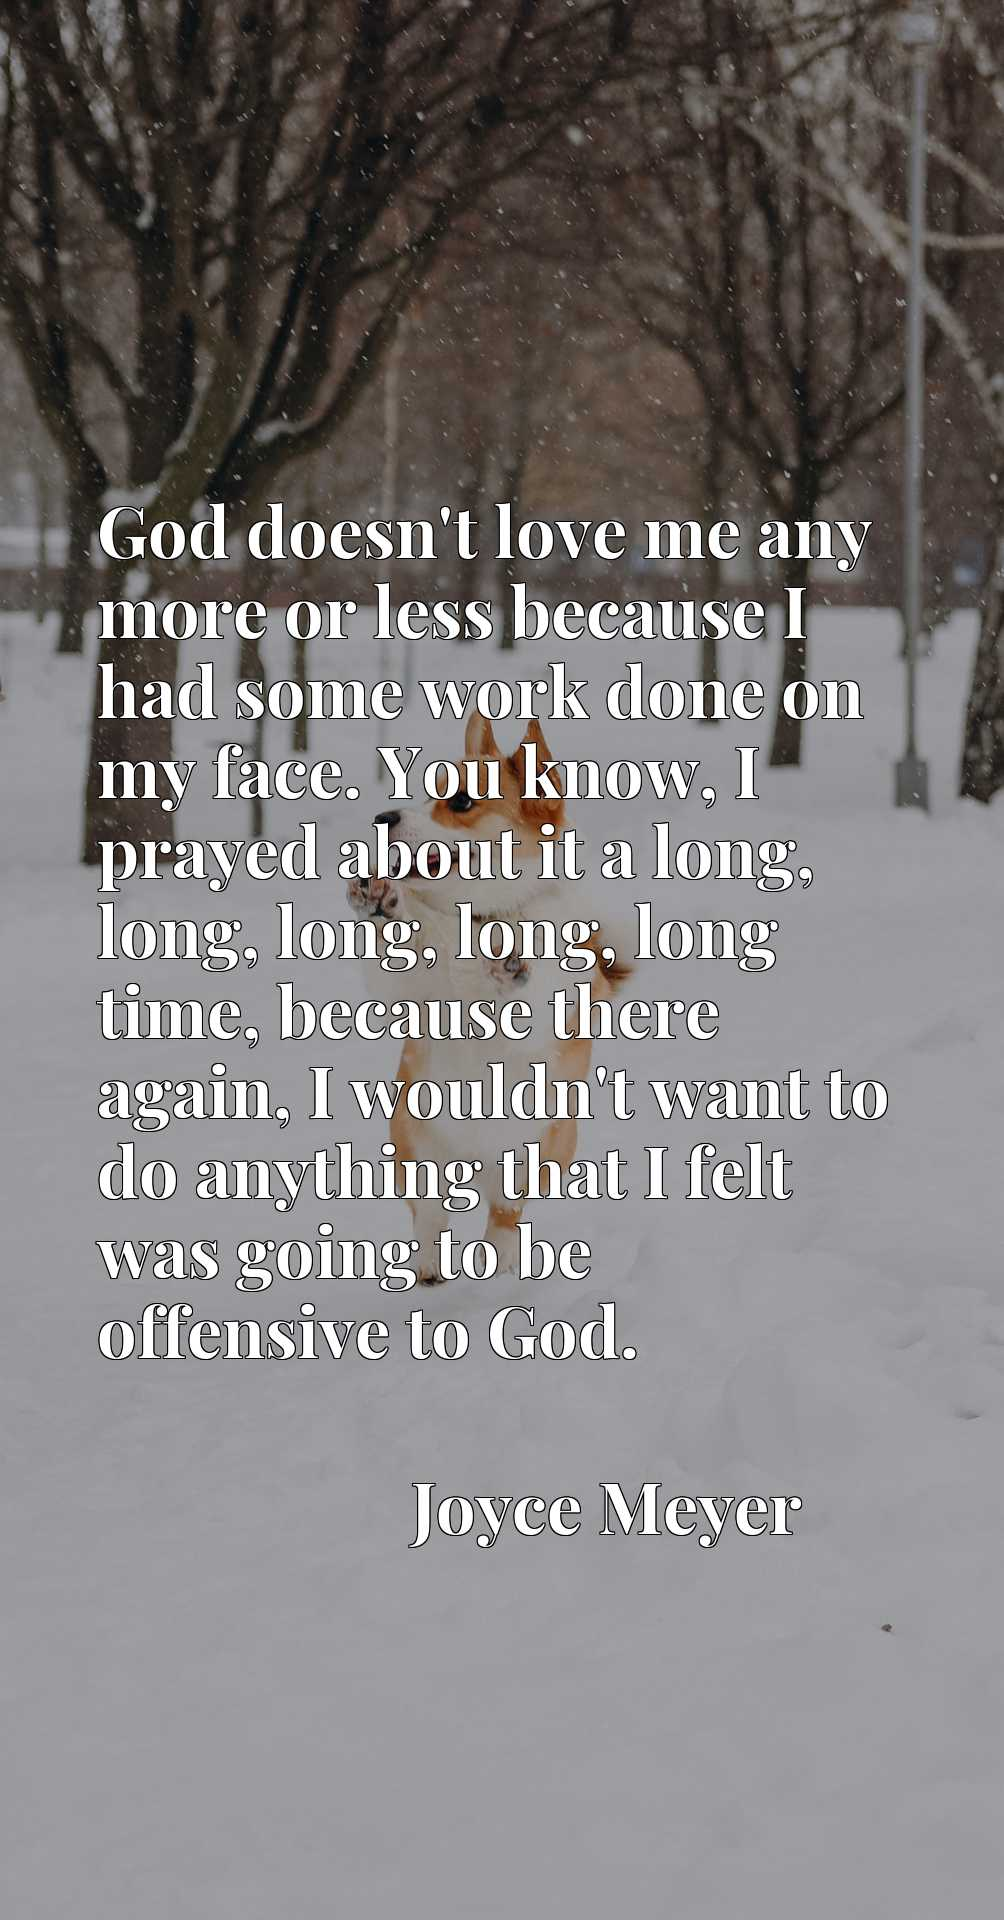 God doesn't love me any more or less because I had some work done on my face. You know, I prayed about it a long, long, long, long, long time, because there again, I wouldn't want to do anything that I felt was going to be offensive to God.